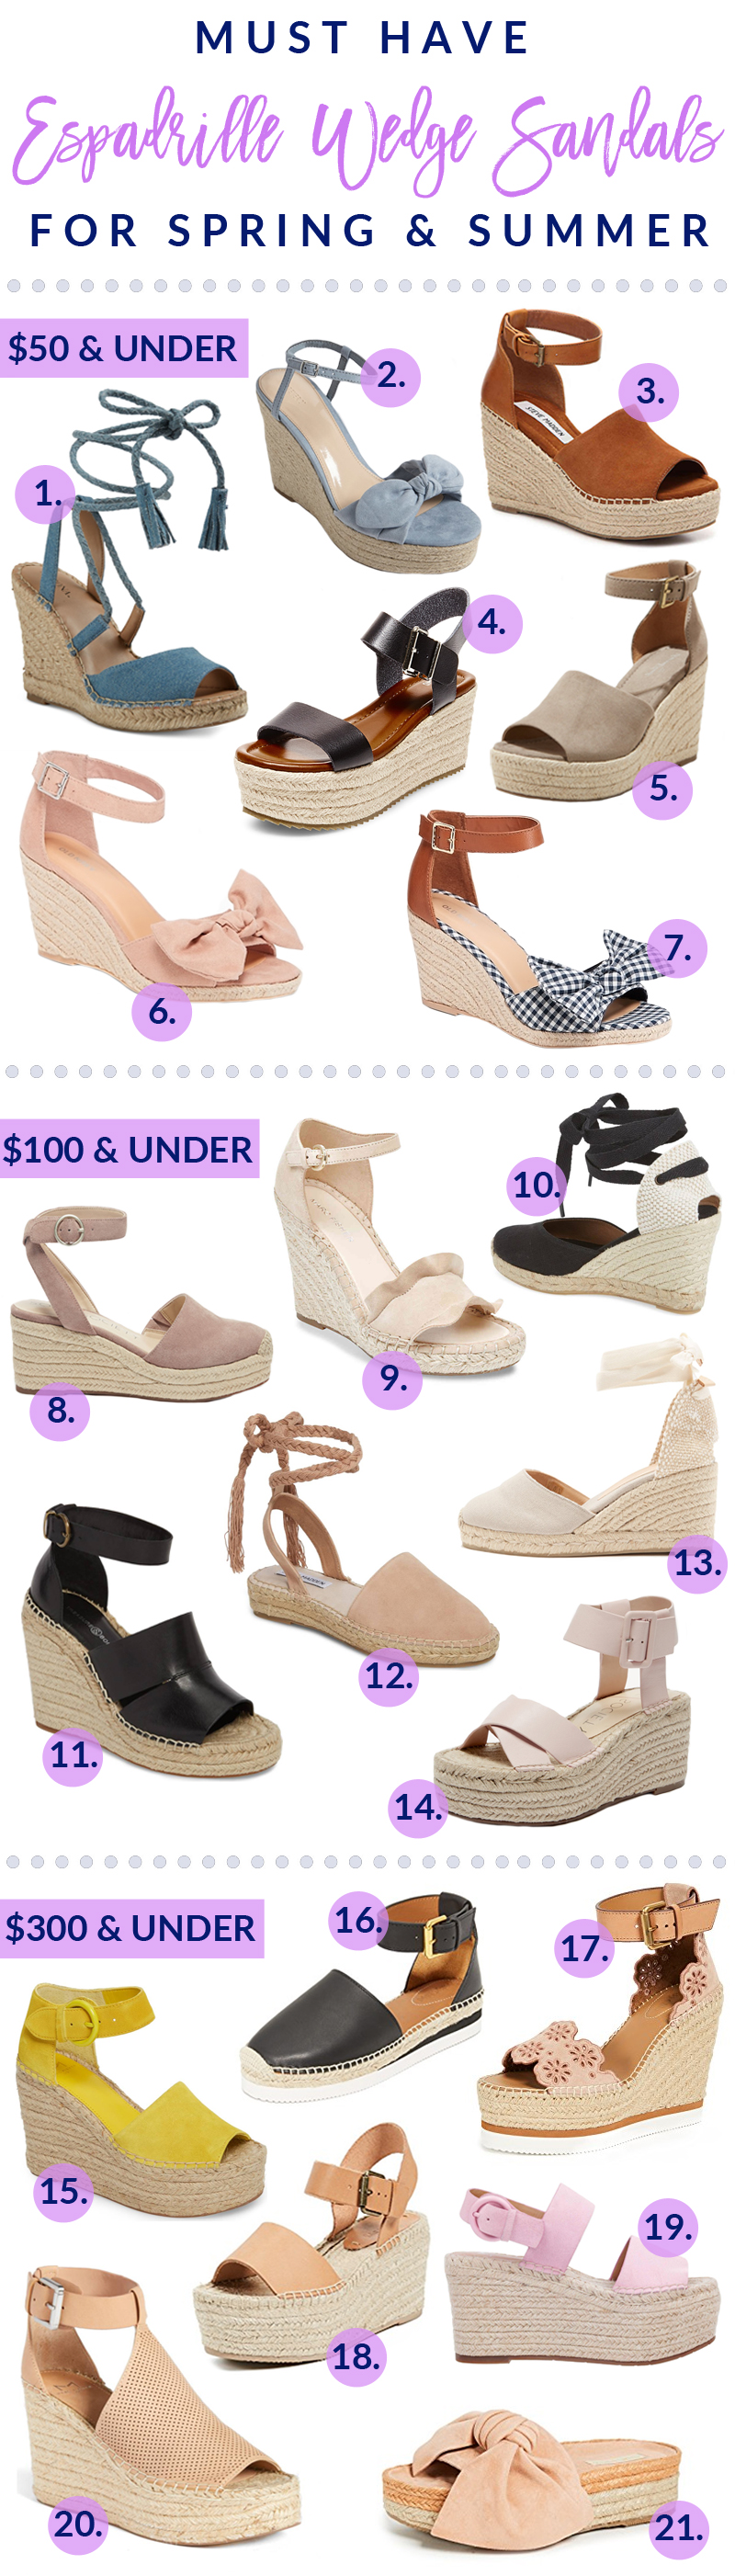 5b0278b5767 Must Have Espadrille Wedge Sandals For Spring   Summer by popular Utah  style blogger Sandy A ...